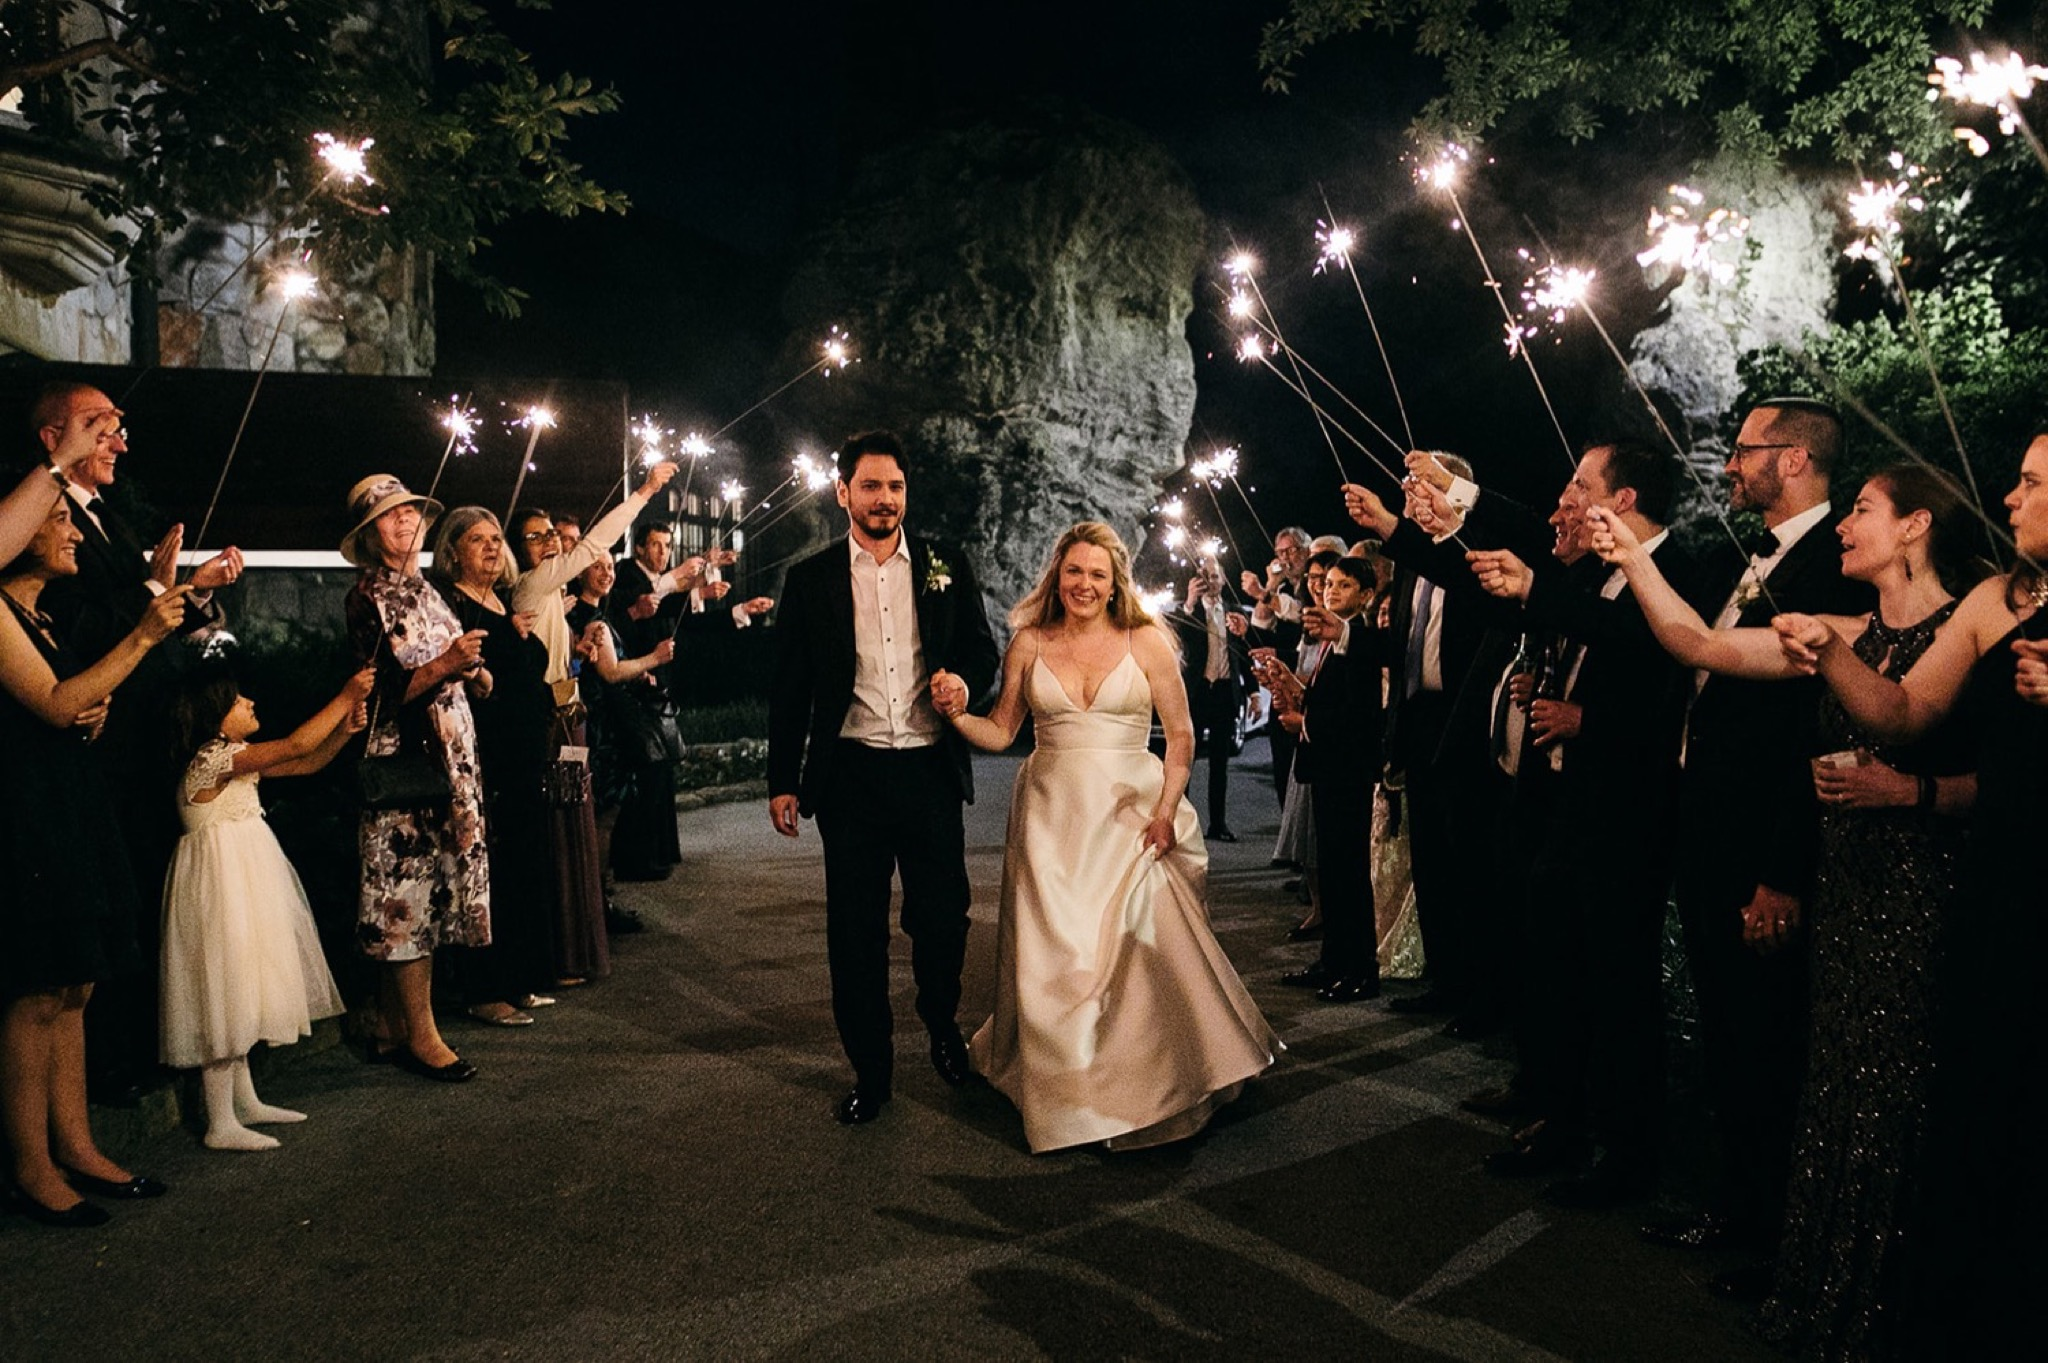 bride and groom hold hands and walk between wedding guests holding sparklers